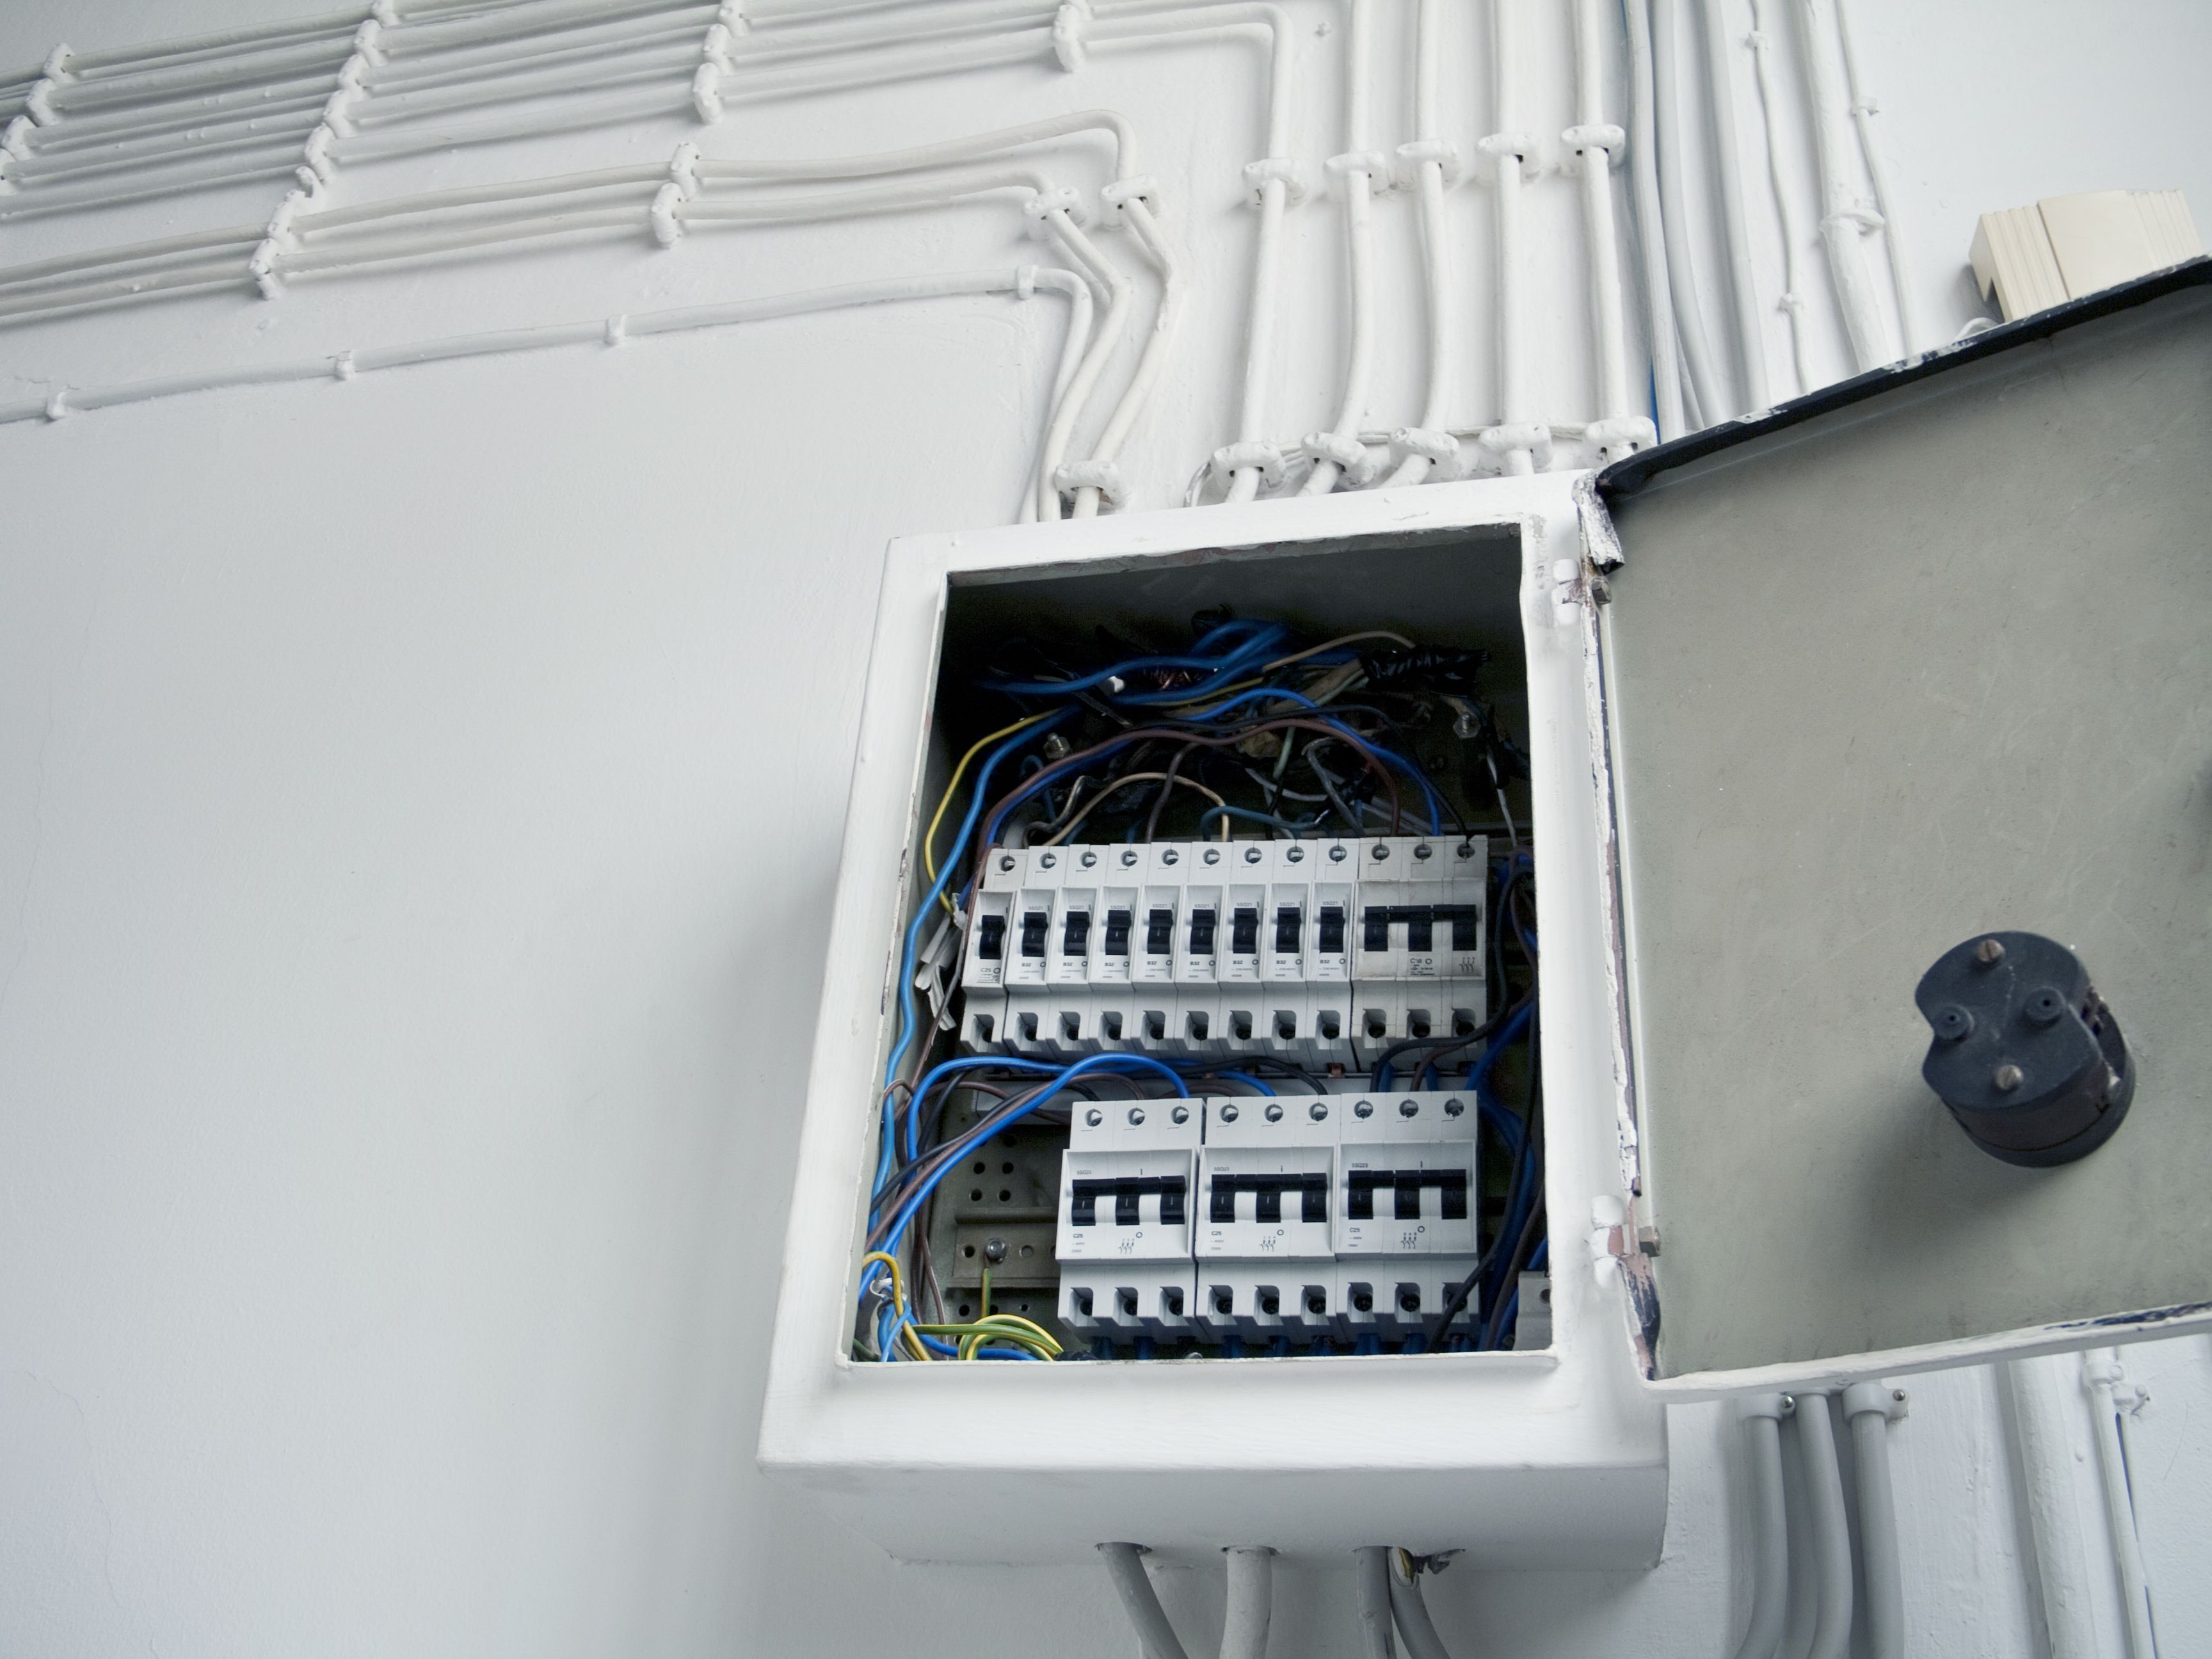 safely reset the circuit box that powers your house